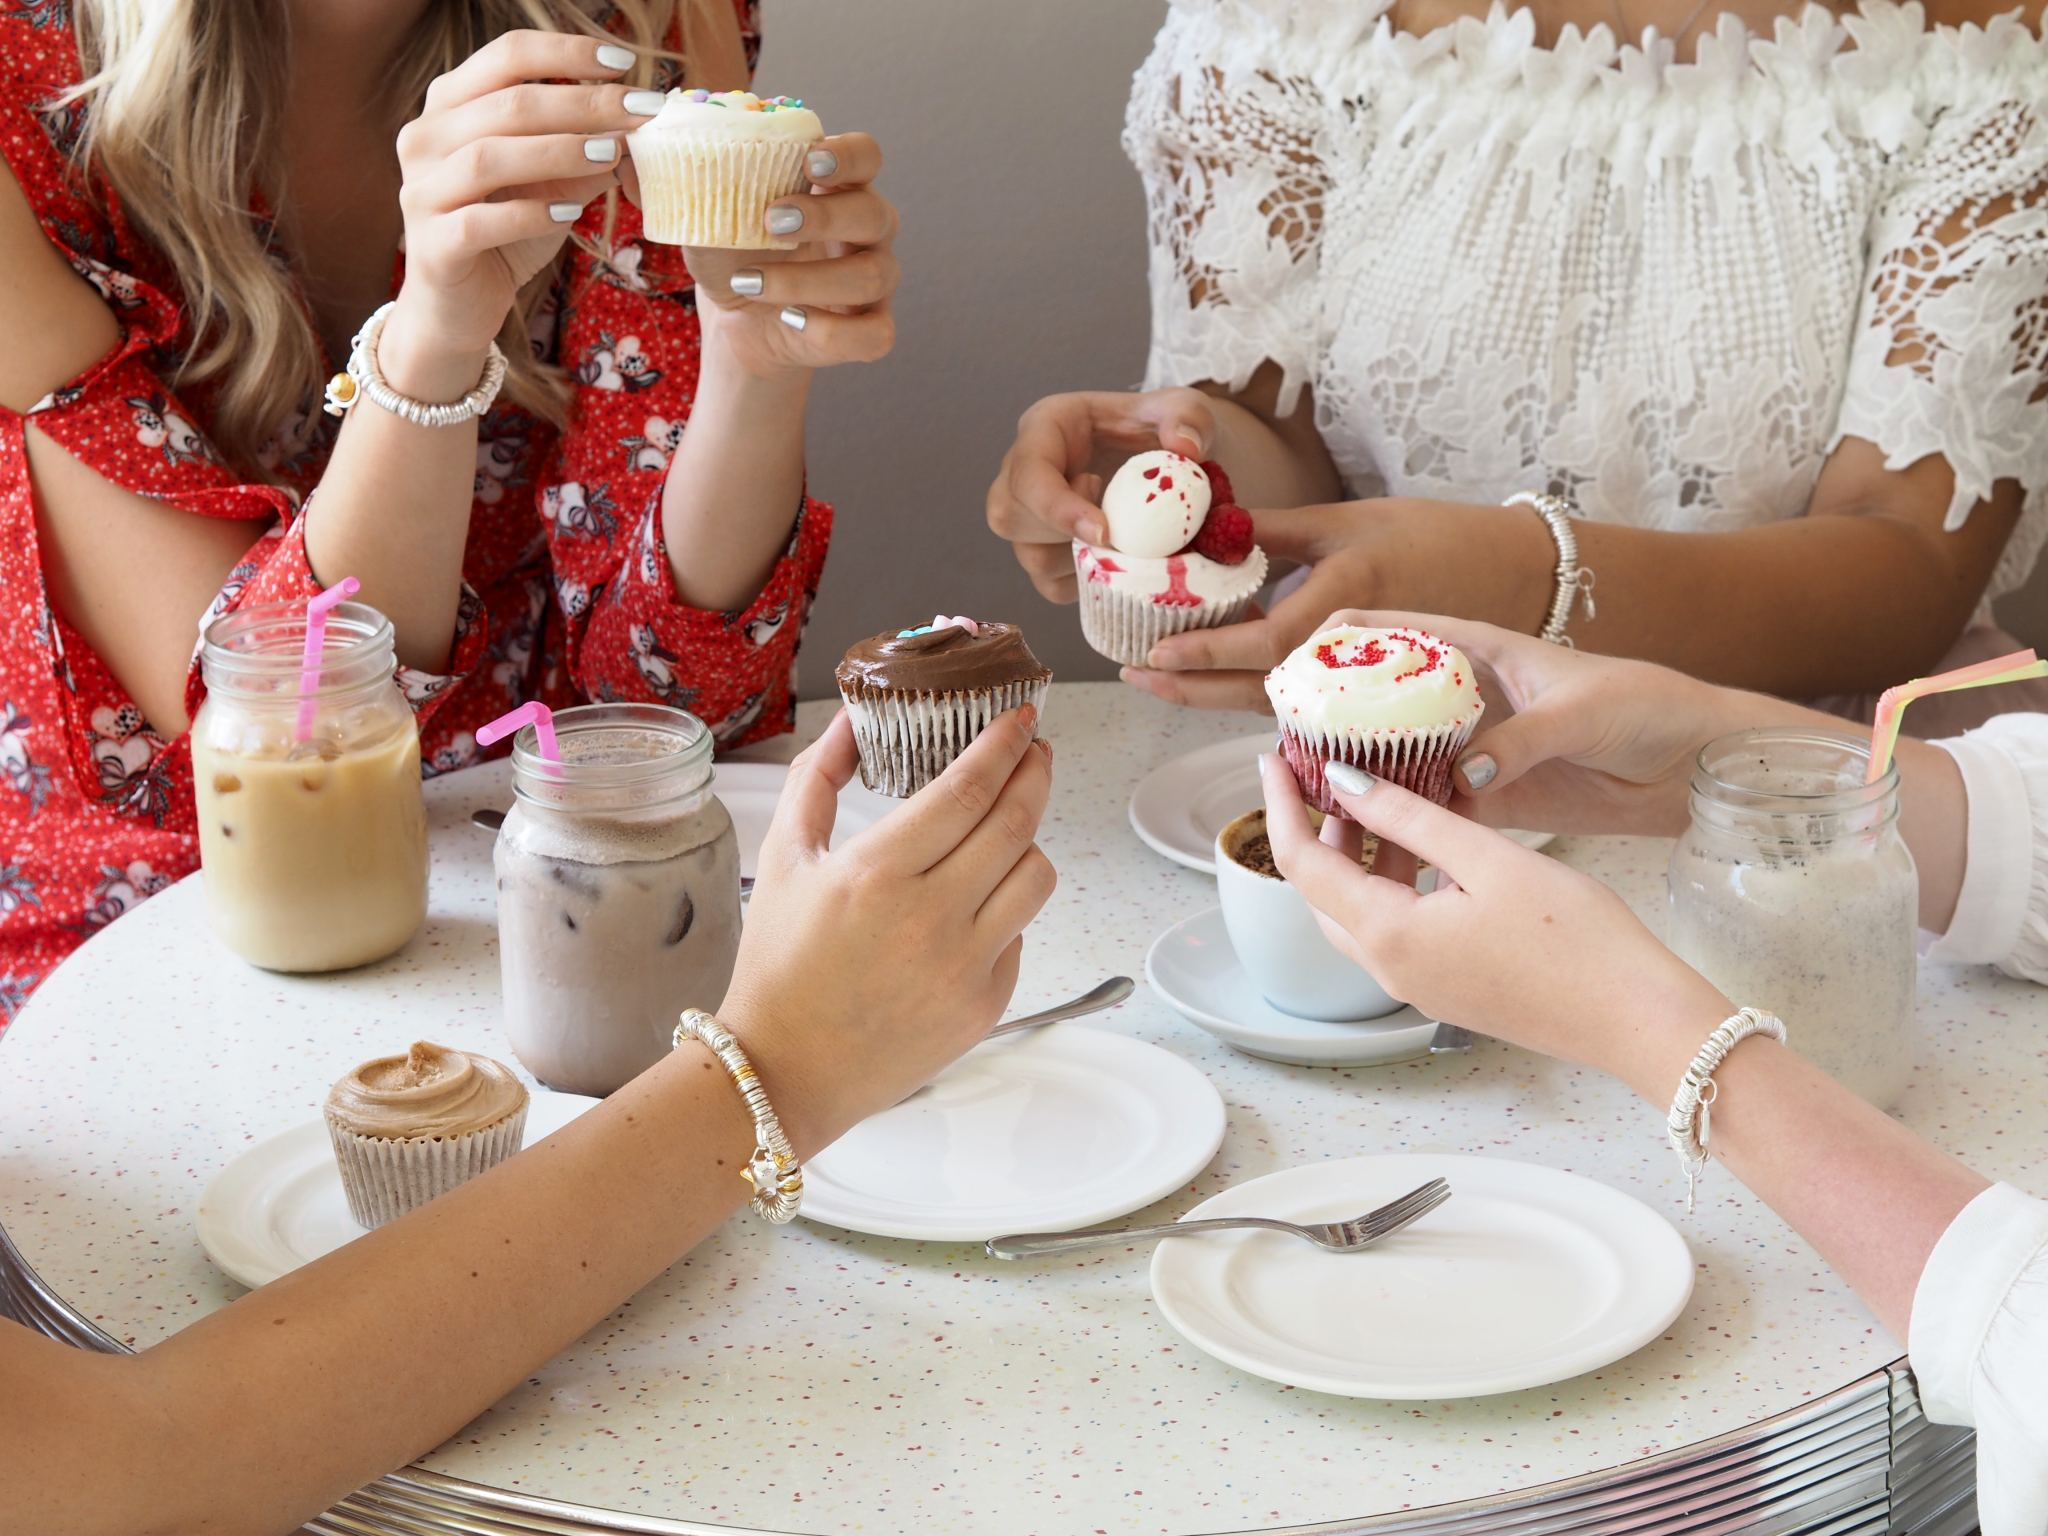 cupcakes and Links of London sweetie bracelets